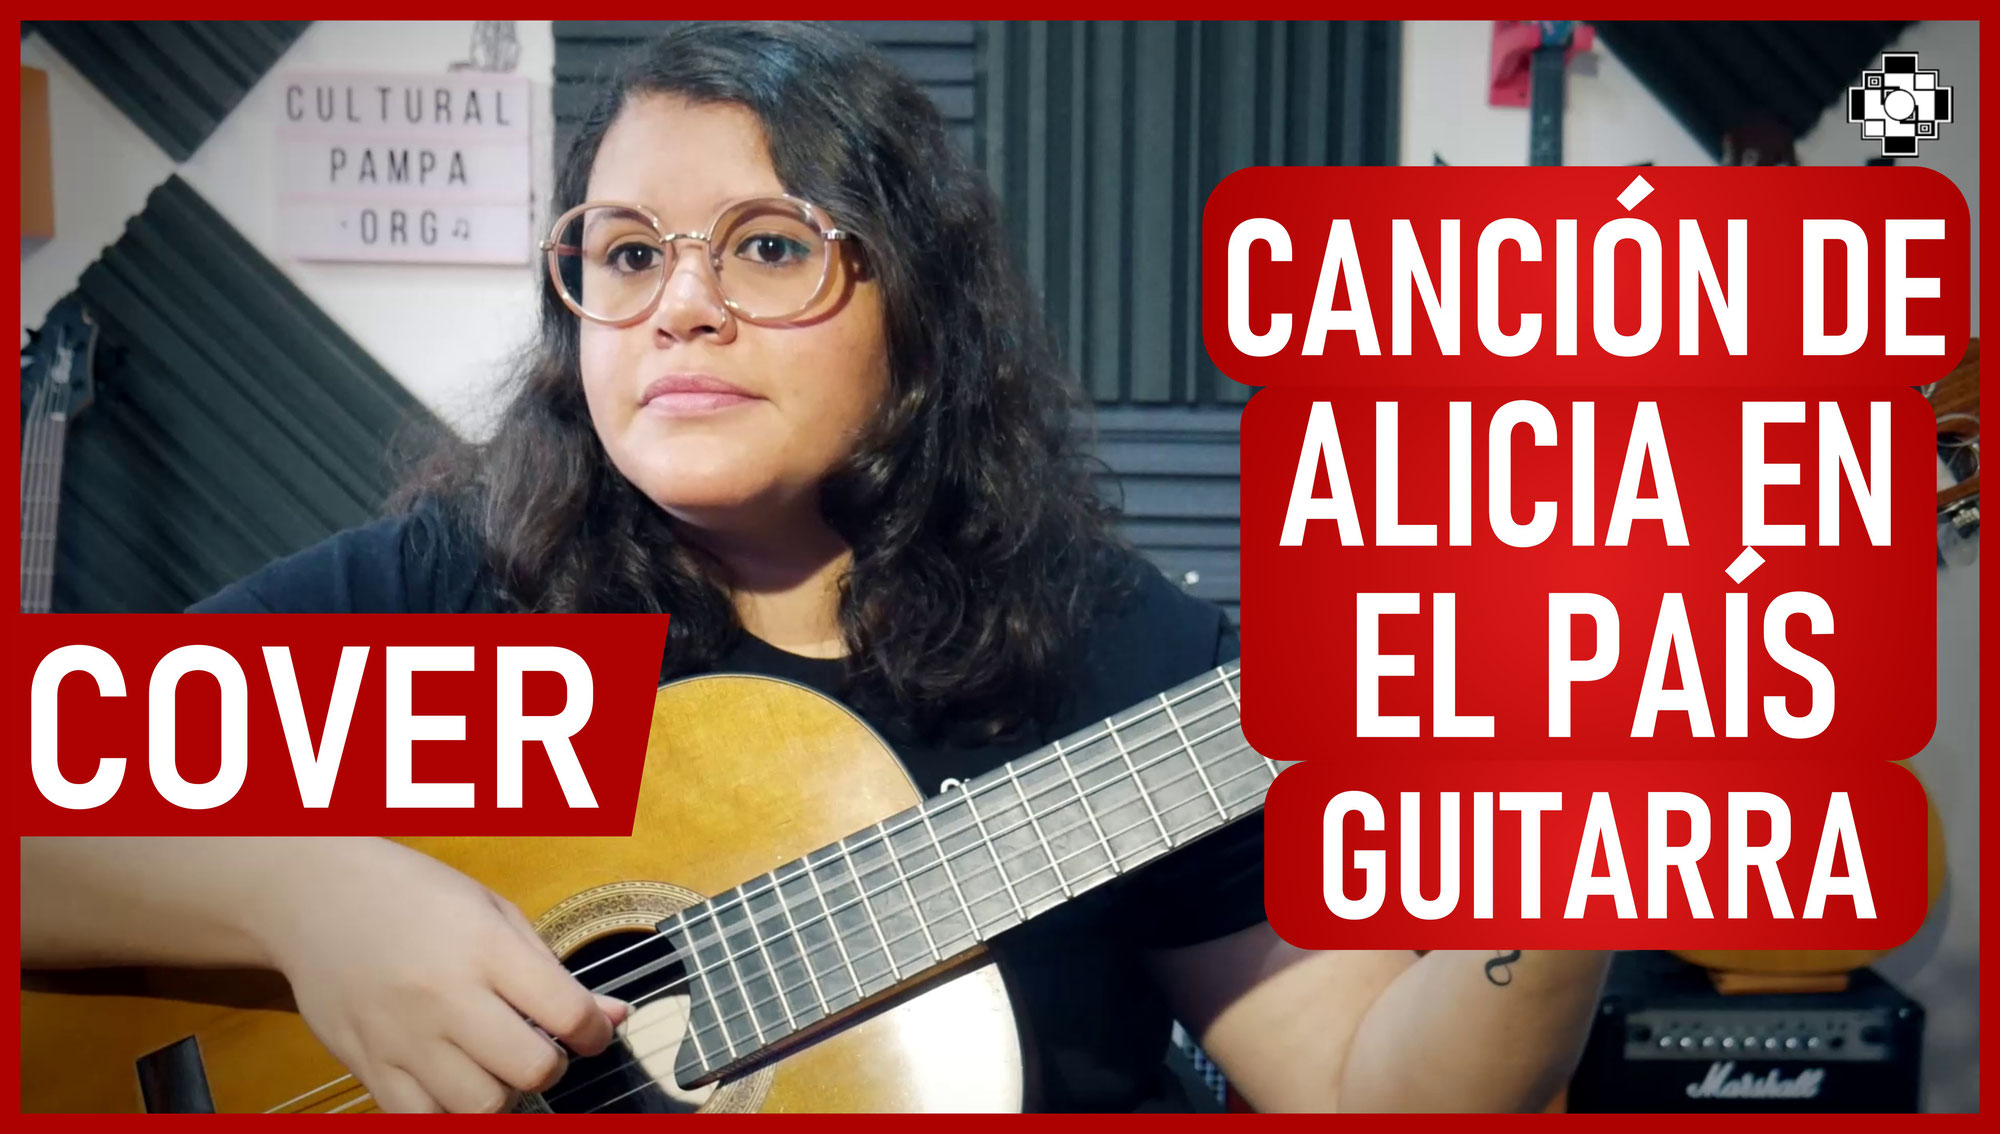 Cancion de Alicia en el pais (Seru Giran) | Cover Guitarra